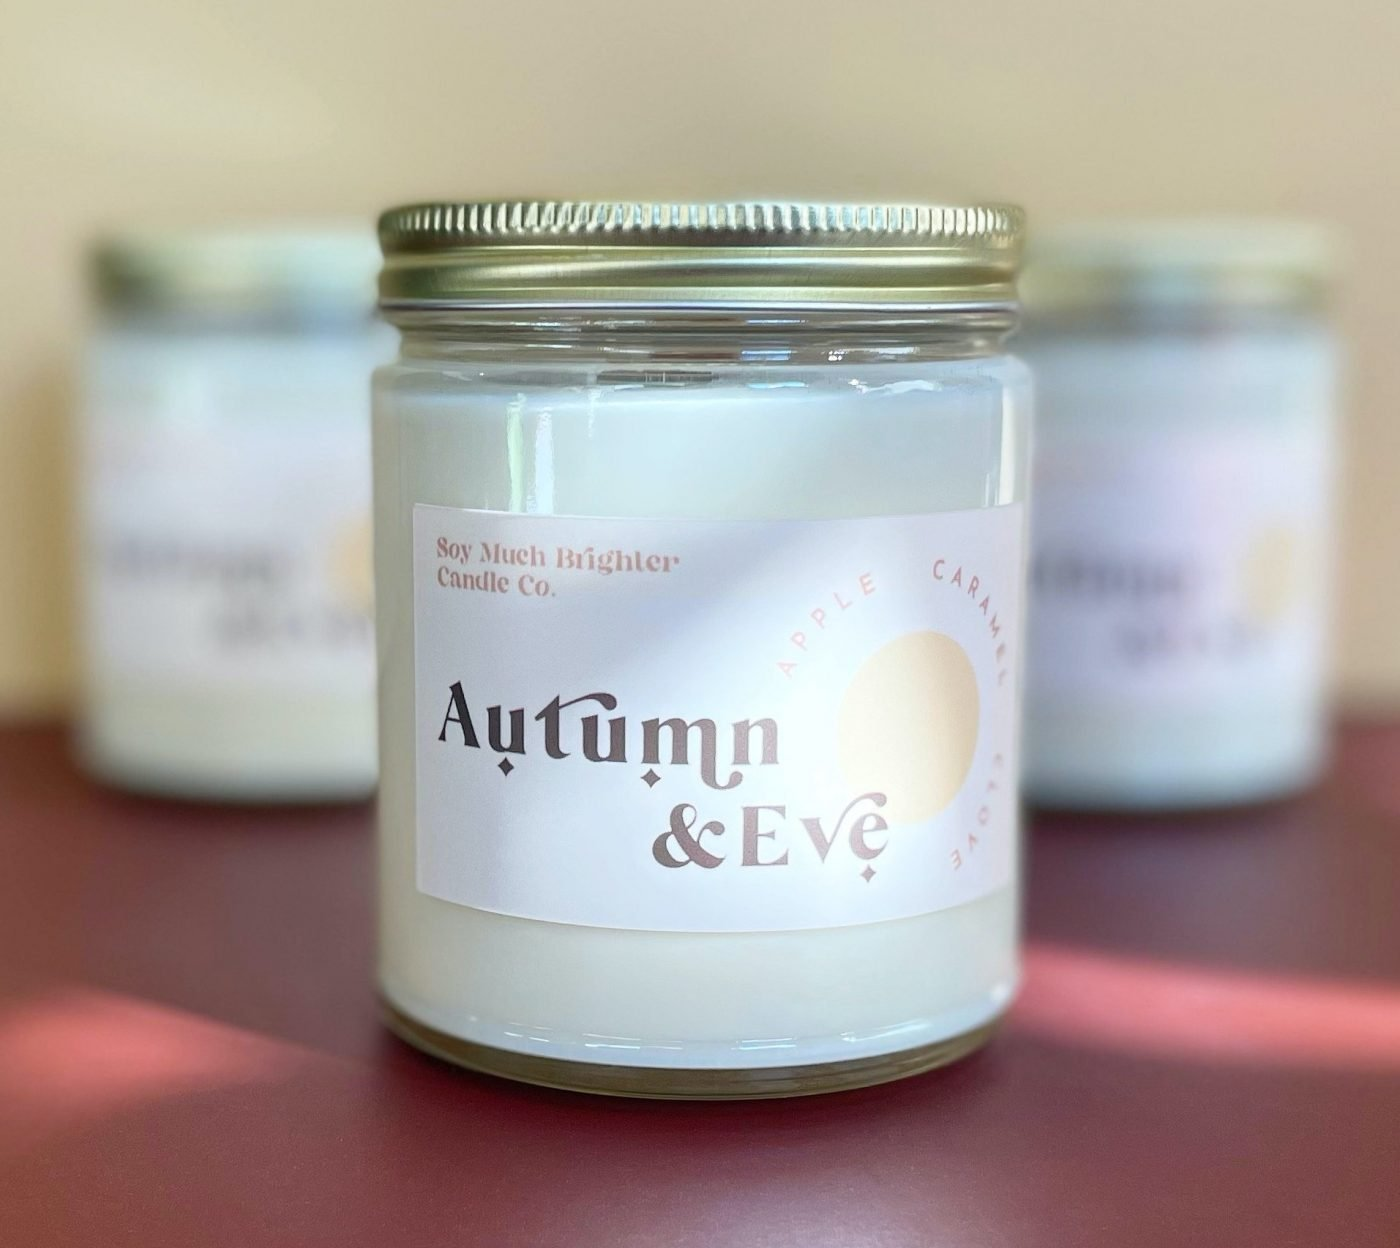 autumn and eve candle from soy much brighter